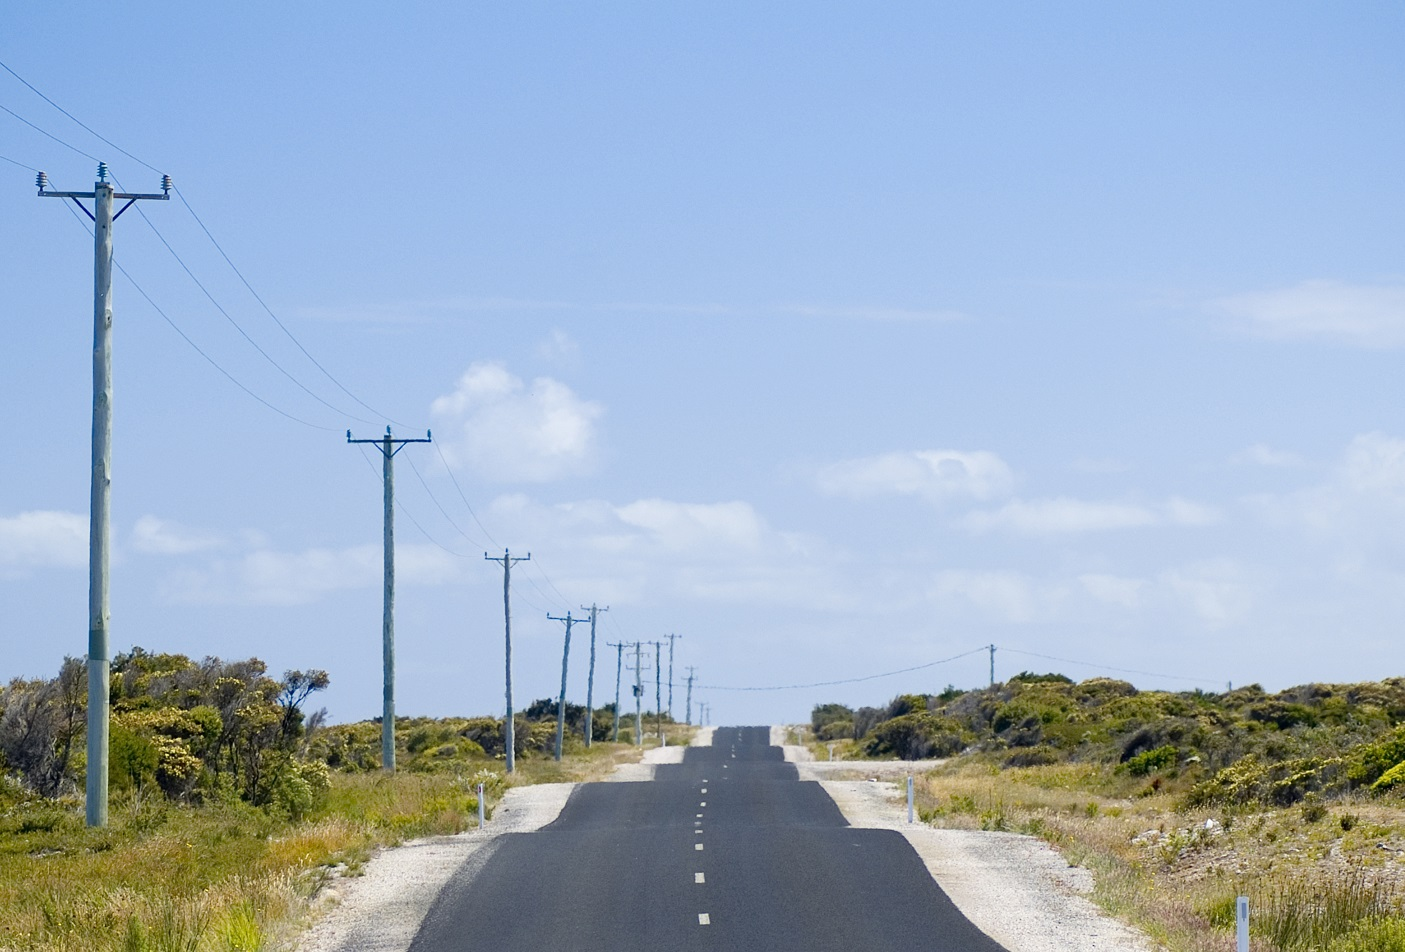 Image of a bumpy road going off into the distance